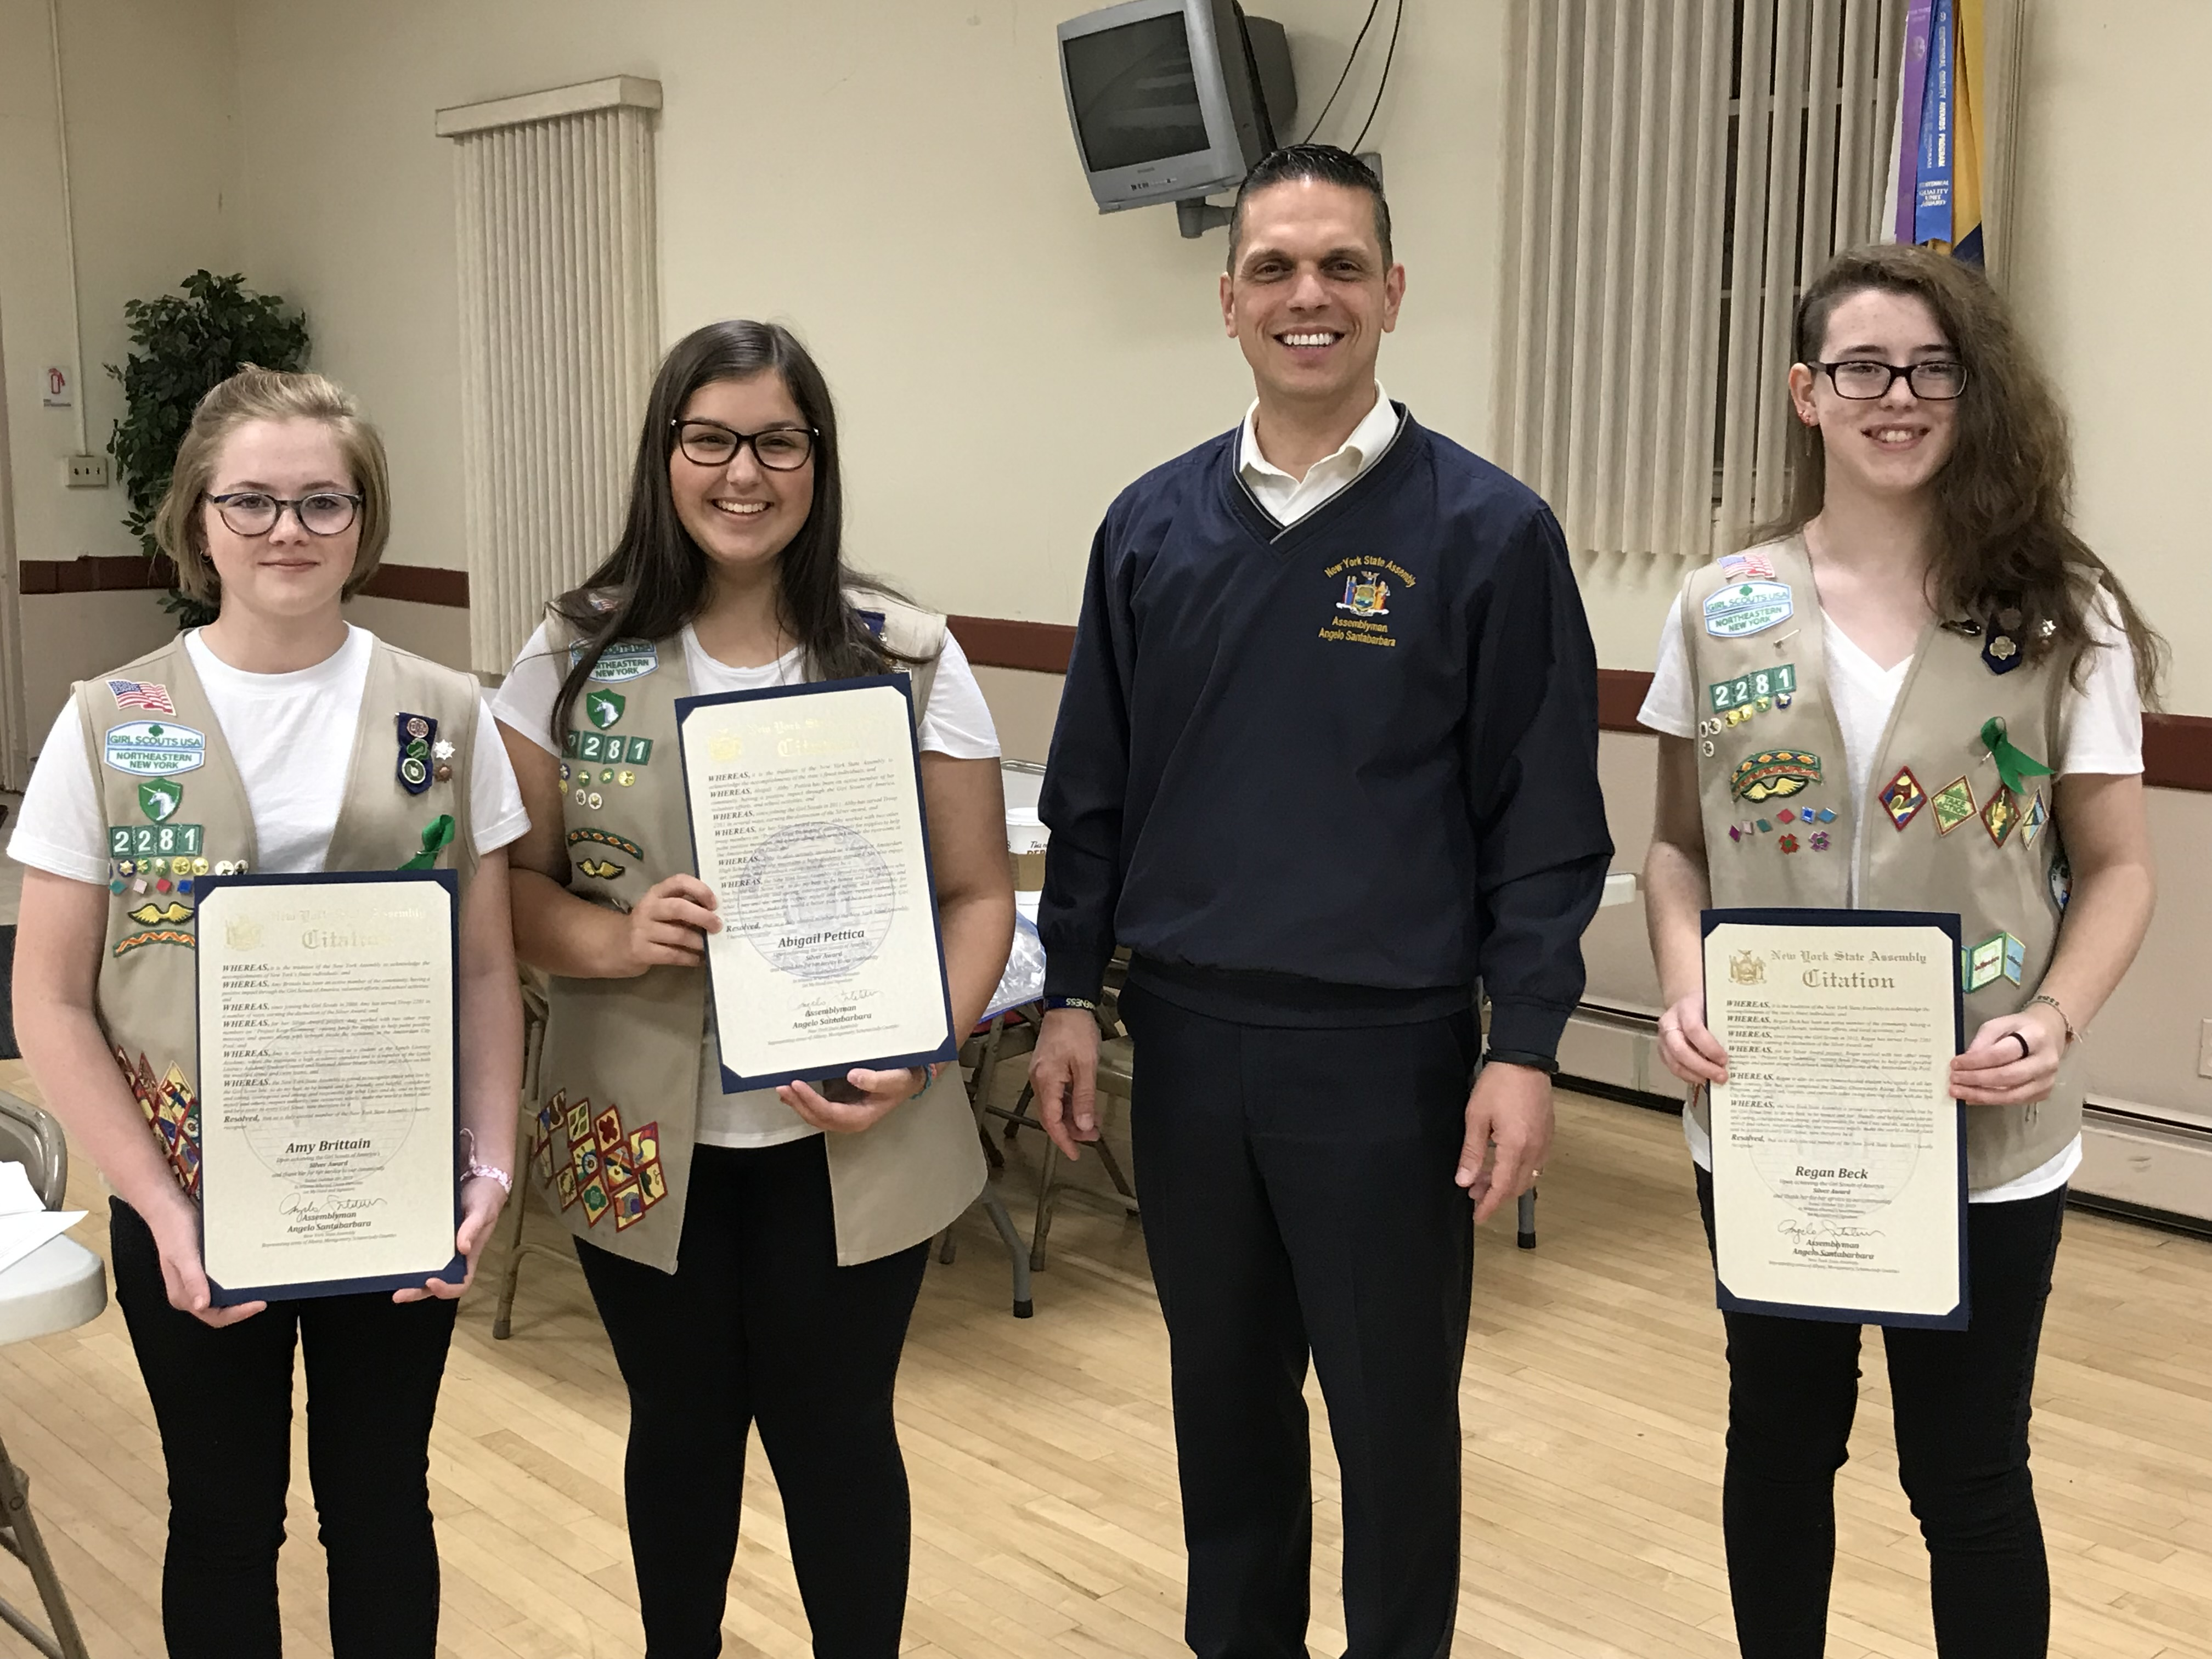 Assemblyman Angelo Santabarbara presents Amy Brittain, Abigail Pettica, and Regan Beck from Girl Scout Troop 2281 in Amsterdam with citations from the New York State Assembly recognizing their Silver